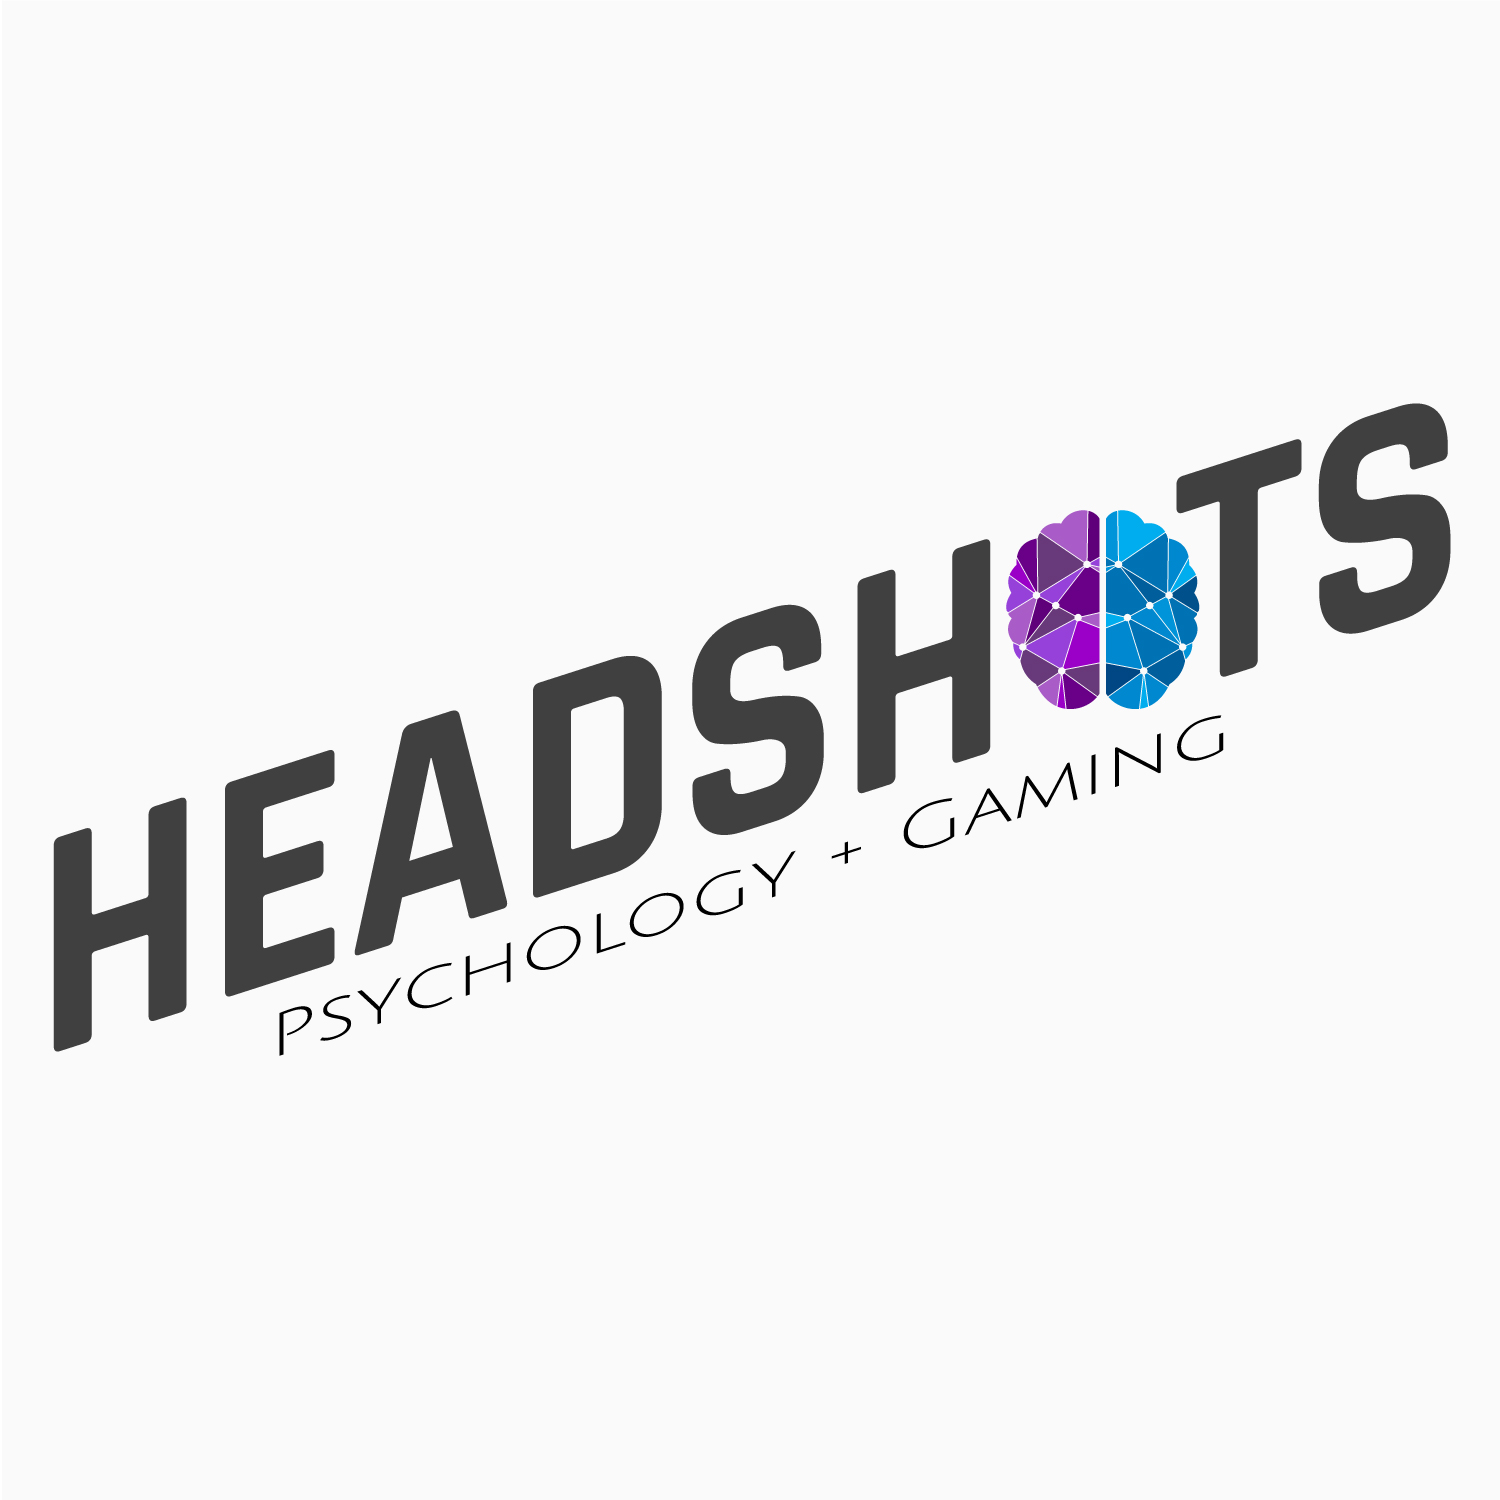 Headshots - The Psychology and Gaming Podcast